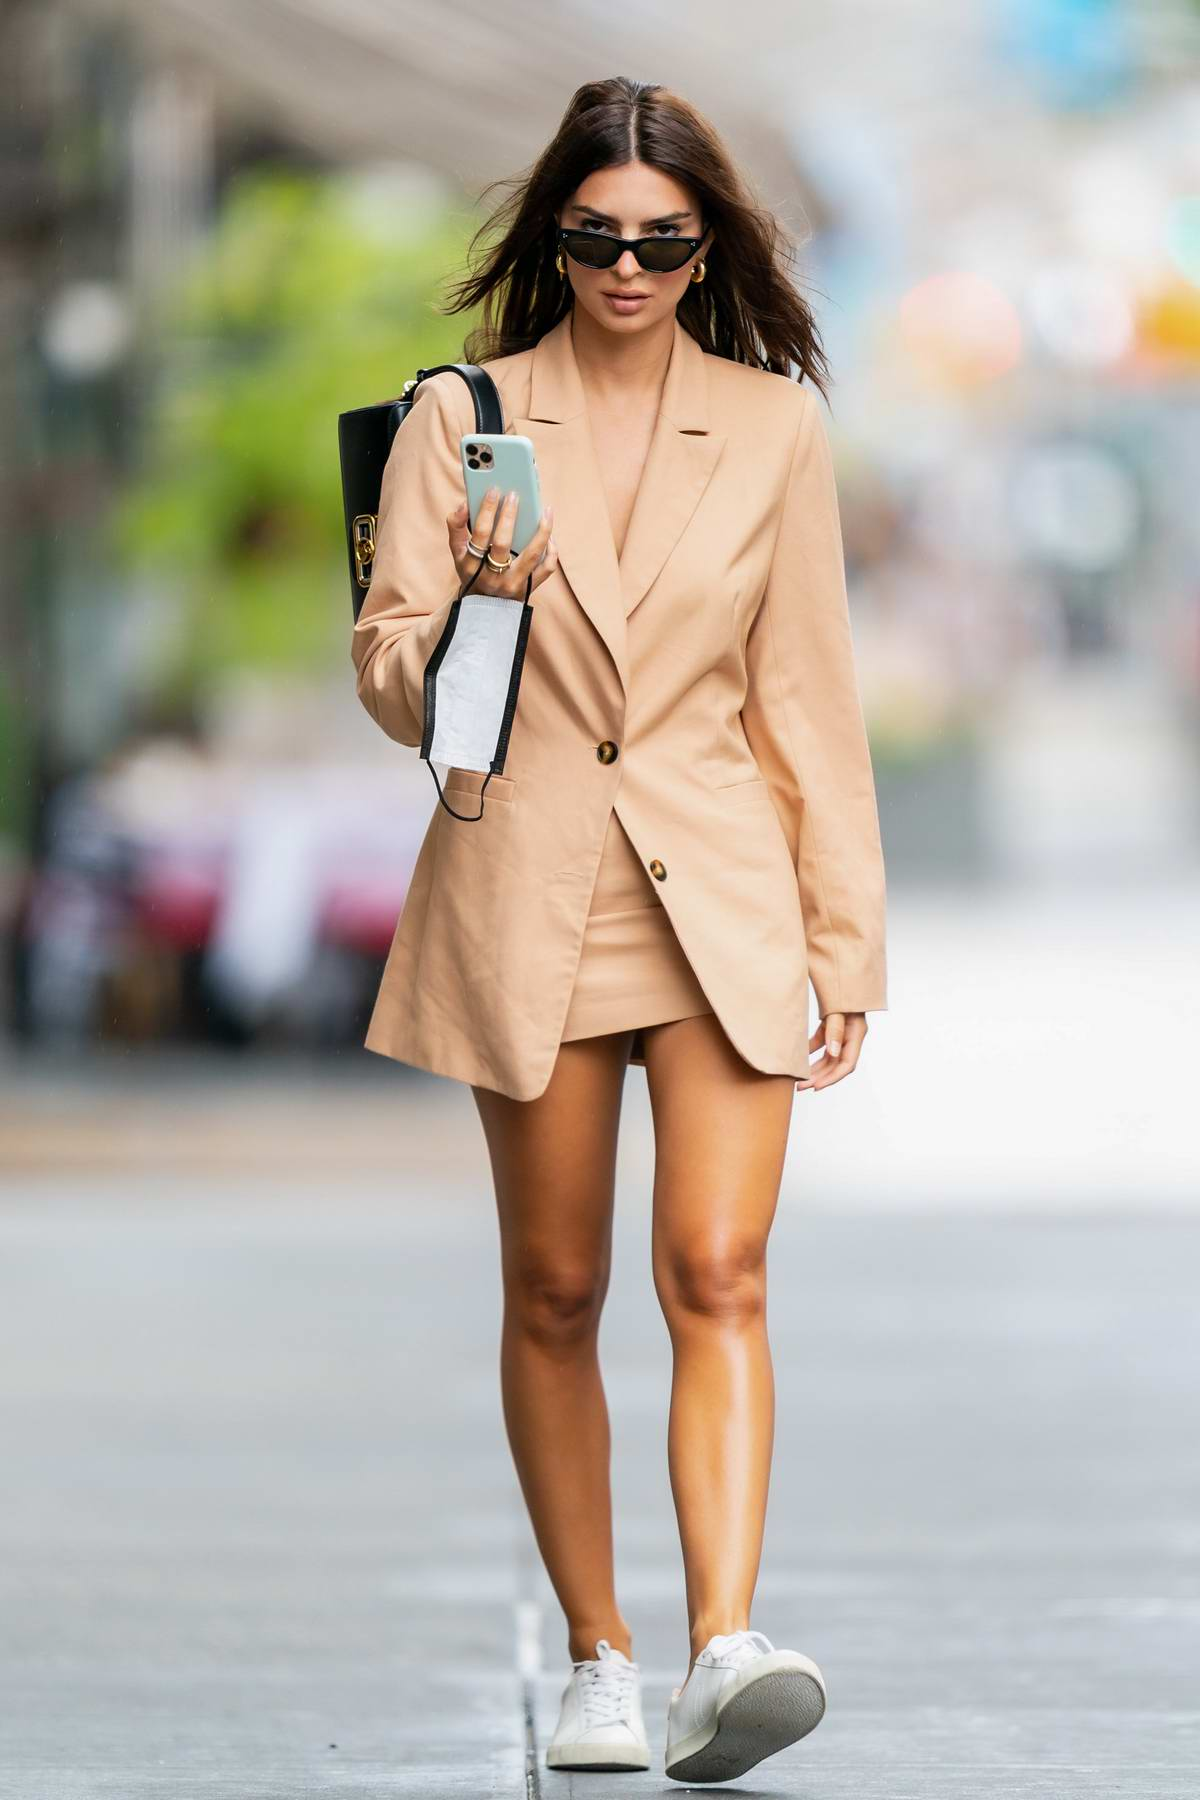 Emily Ratajkowski looks stylish in a beige blazer and miniskirt while out on a solo stroll in New York City